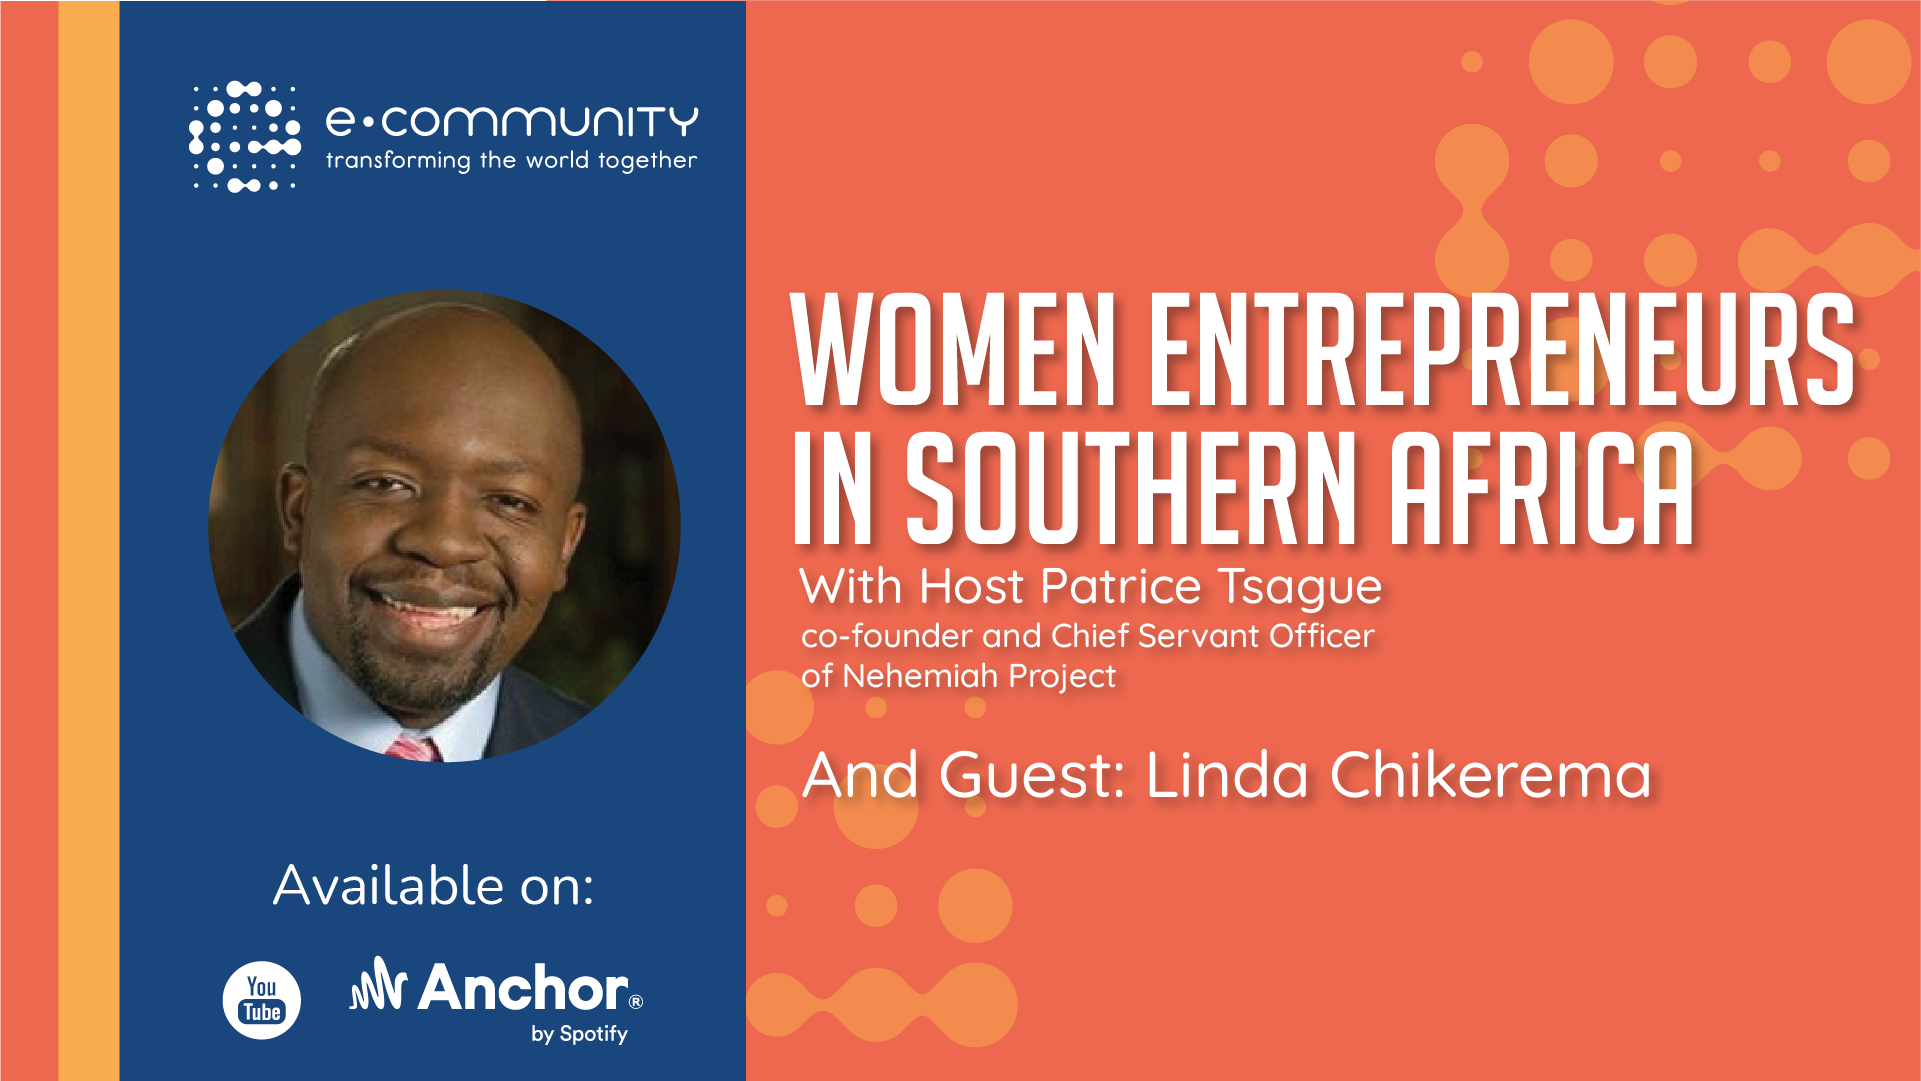 Women Entrepreneurs in Southern Africa